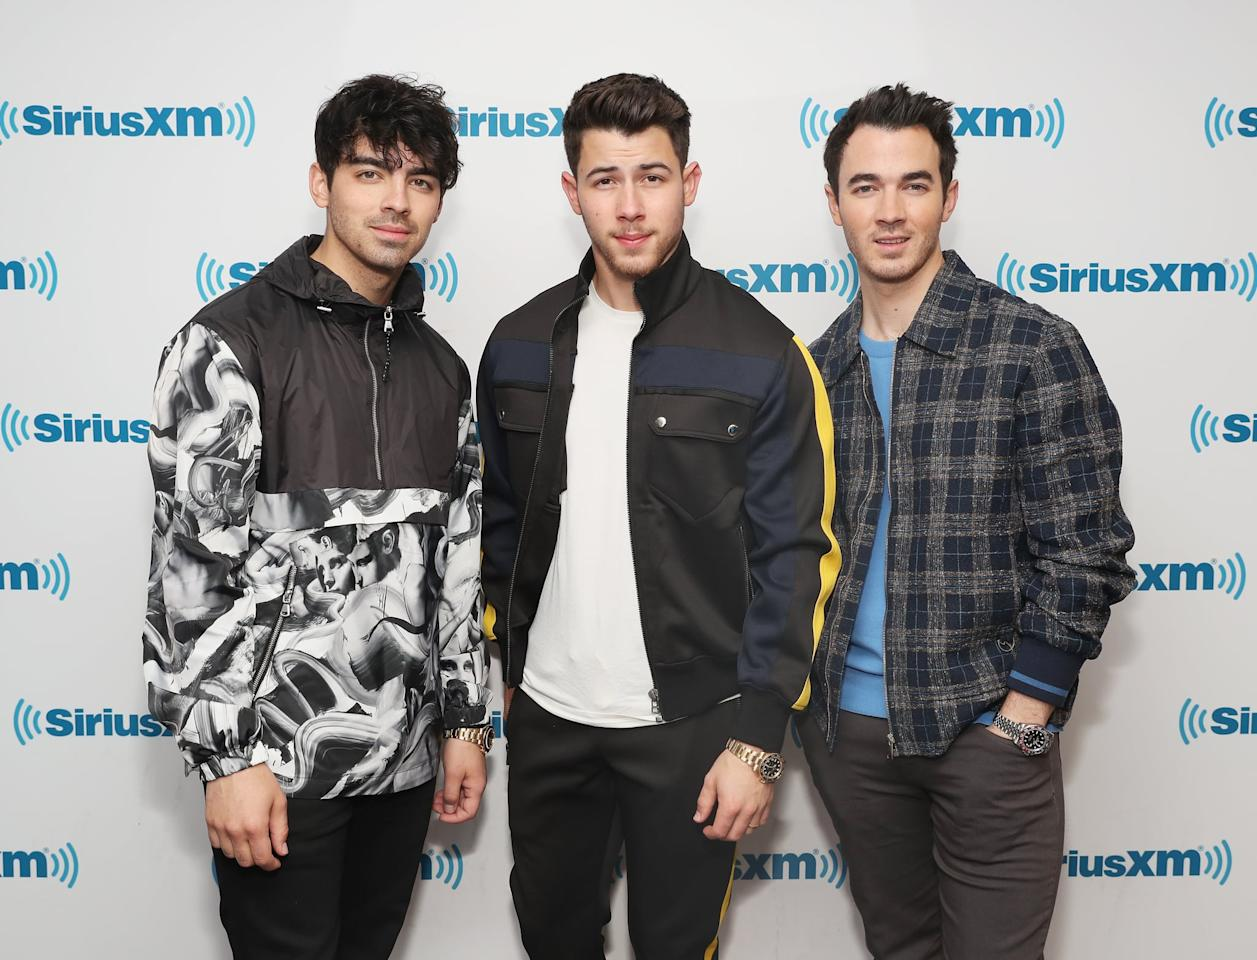 """<p>After <a href=""""https://www.popsugar.com/celebrity/Jonas-Brothers-Reuniting-44502570"""" class=""""ga-track"""" data-ga-category=""""Related"""" data-ga-label=""""http://www.popsugar.com/celebrity/Jonas-Brothers-Reuniting-44502570"""" data-ga-action=""""In-Line Links"""">announcing their reunion</a>, the brothers appeared on a handful of radio shows to talk about their new music. Around the same time, they also revealed that <a href=""""https://www.popsugar.com/entertainment/Jonas-Brothers-Chasing-Happiness-Amazon-Documentary-Trailer-46137644"""" class=""""ga-track"""" data-ga-category=""""Related"""" data-ga-label=""""http://www.popsugar.com/entertainment/Jonas-Brothers-Chasing-Happiness-Amazon-Documentary-Trailer-46137644"""" data-ga-action=""""In-Line Links"""">they were releasing an Amazon documentary</a> called <a href=""""https://www.popsugar.com/latest/Chasing-Happiness"""" class=""""ga-track"""" data-ga-category=""""Related"""" data-ga-label=""""http://www.popsugar.com/latest/Chasing-Happiness"""" data-ga-action=""""In-Line Links""""><strong>Chasing Happiness</strong></a>. </p>"""